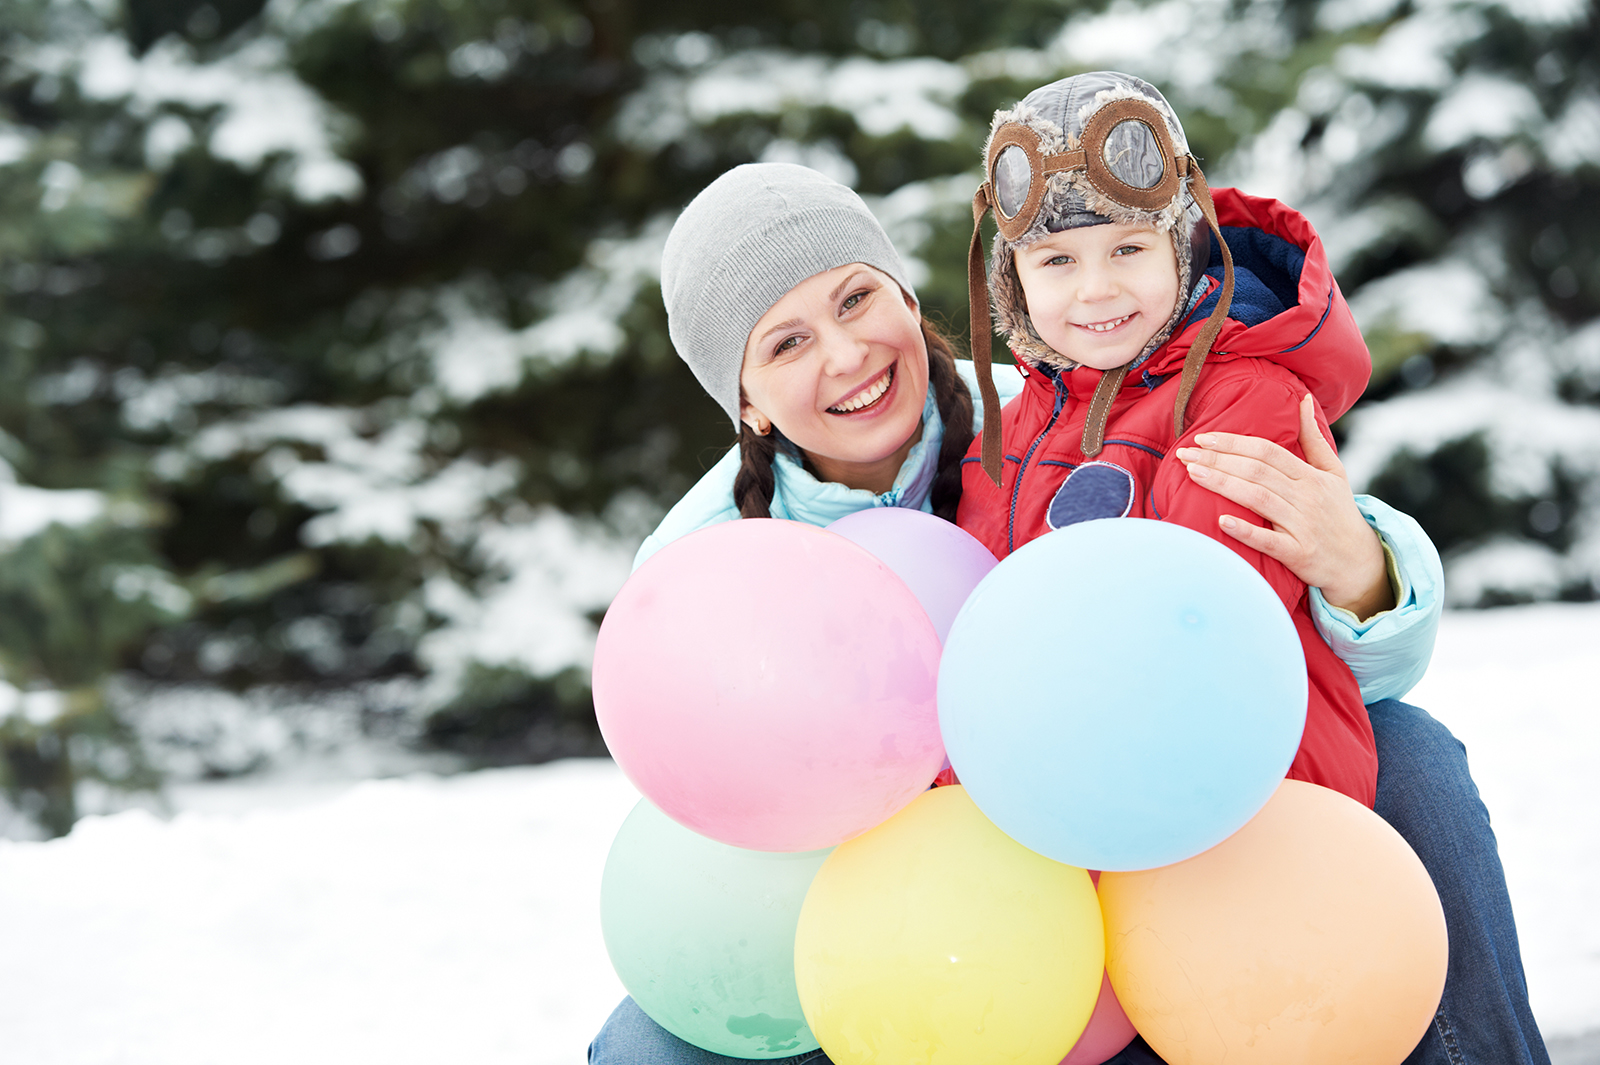 10 Best Winter Birthday Party Ideas for Kids